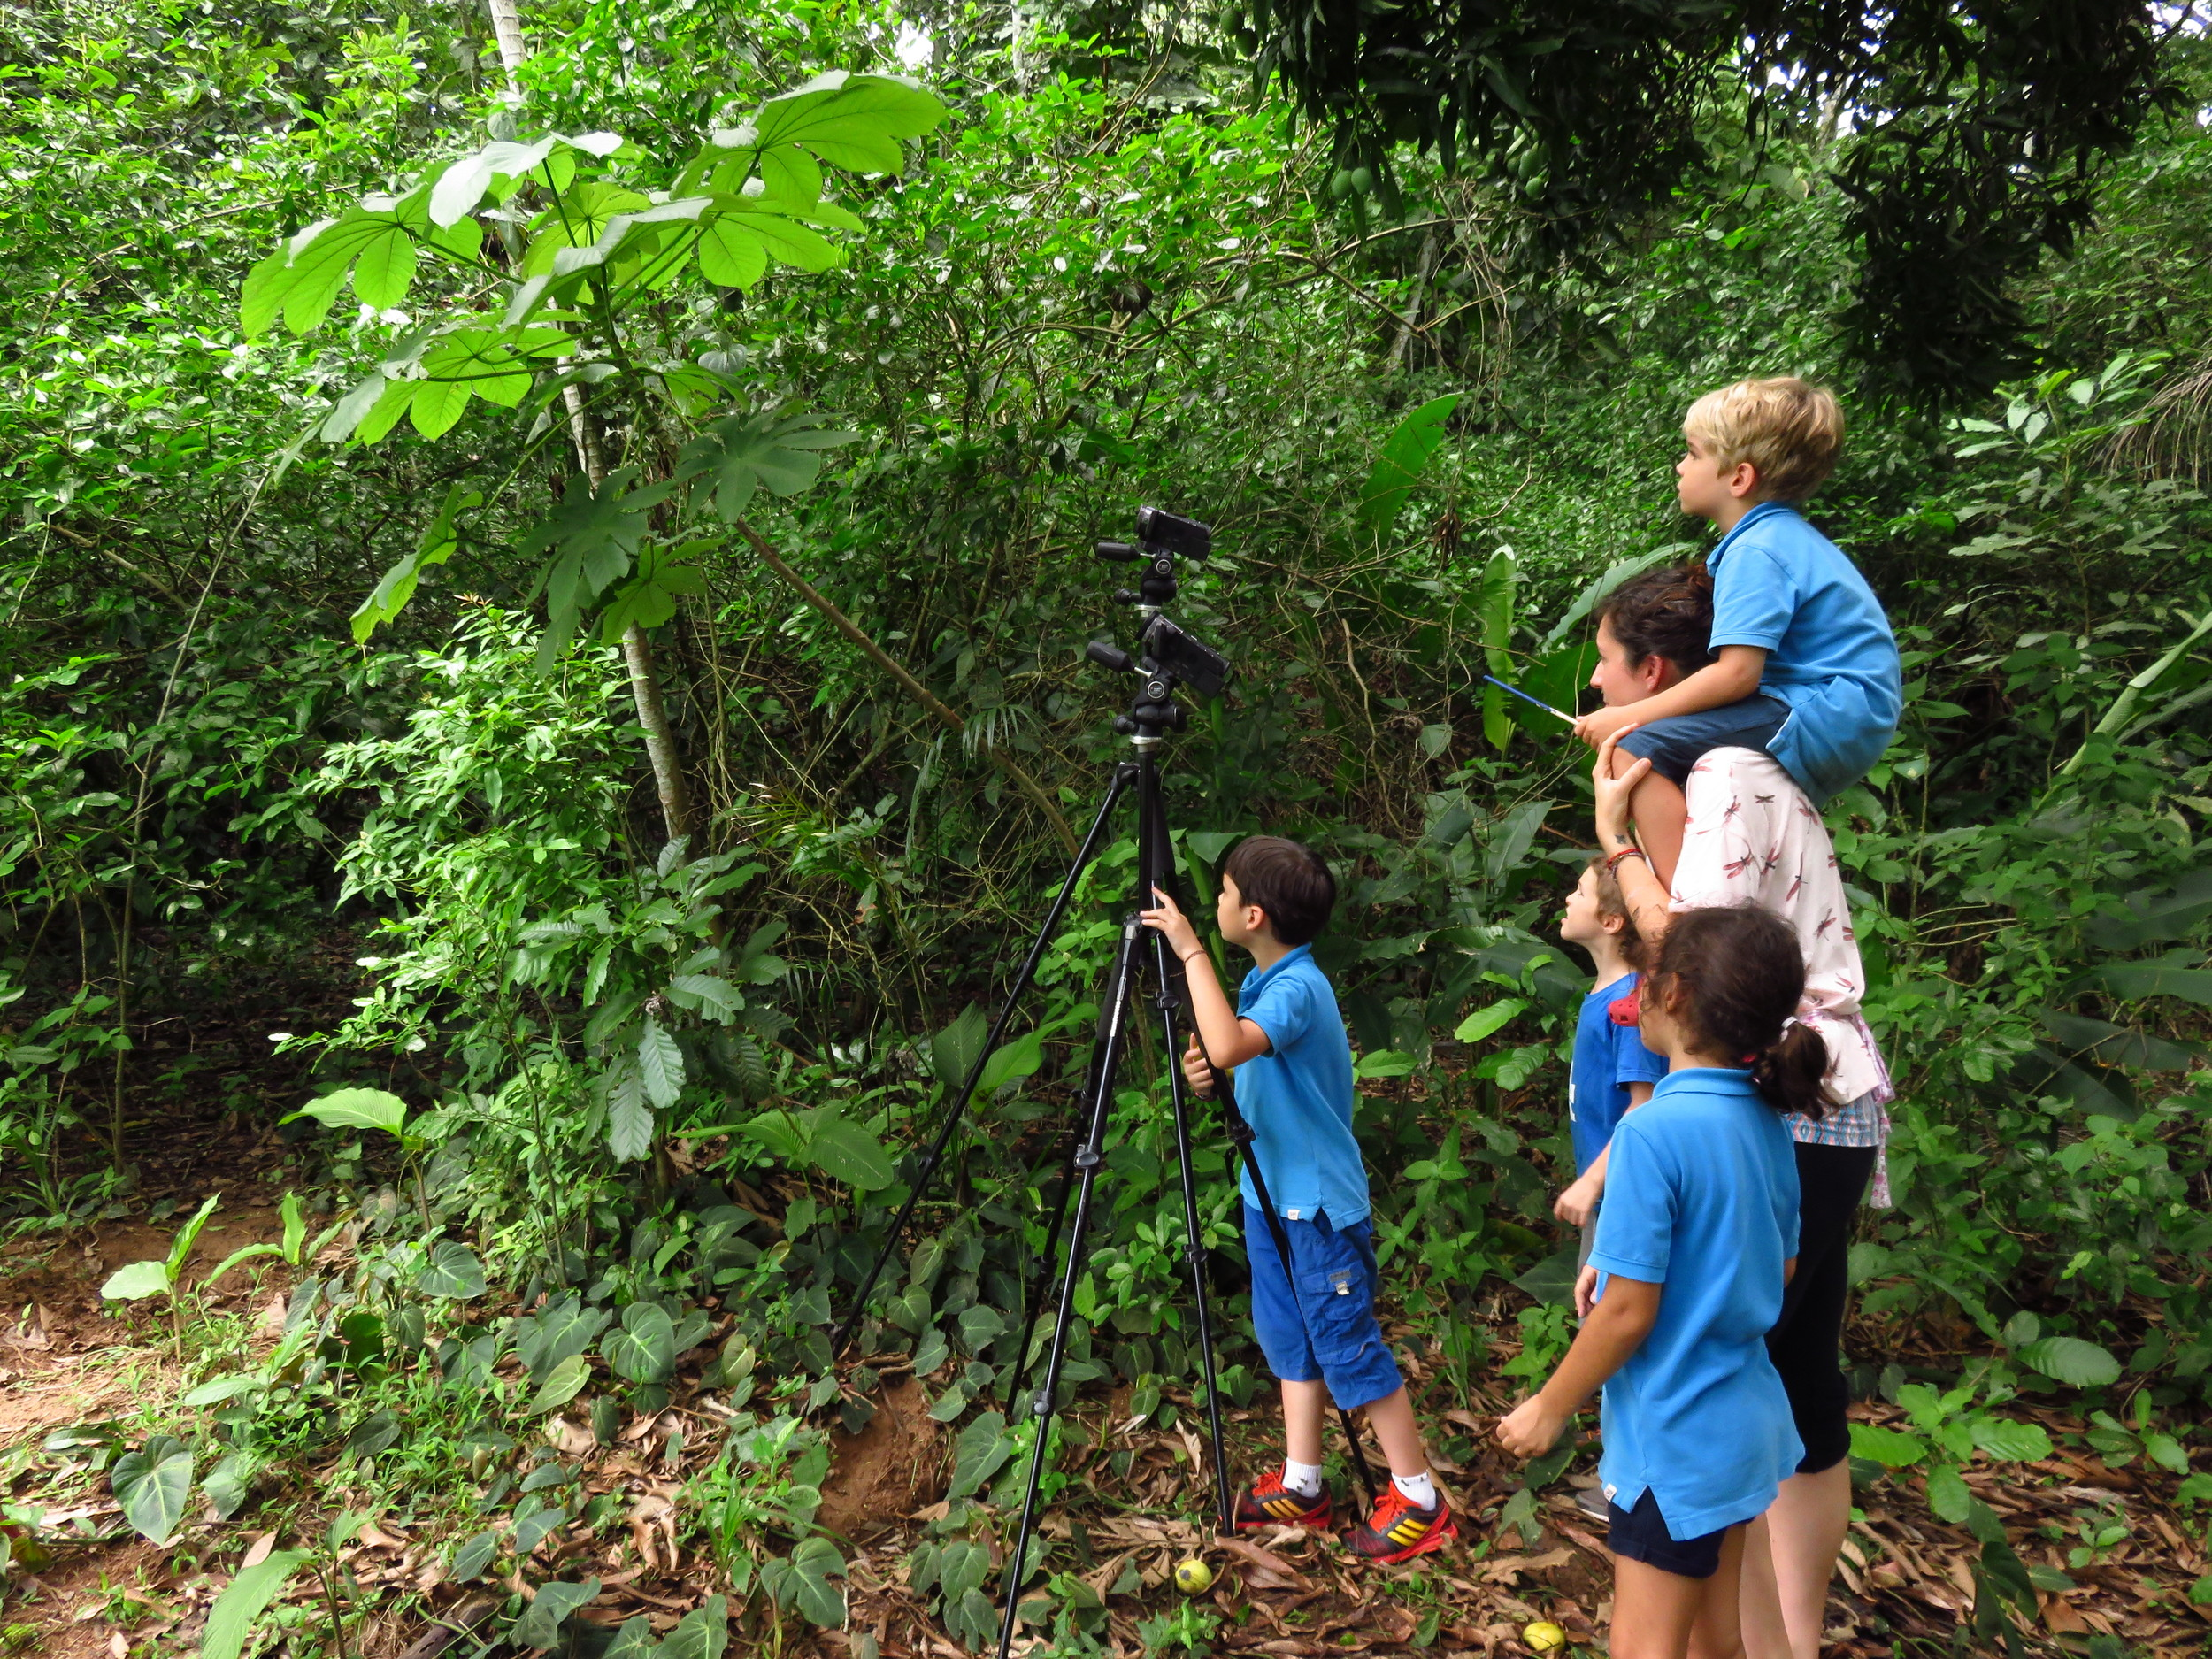 Gamboa Discovery School joins the field excursion to document differences in colony aggression